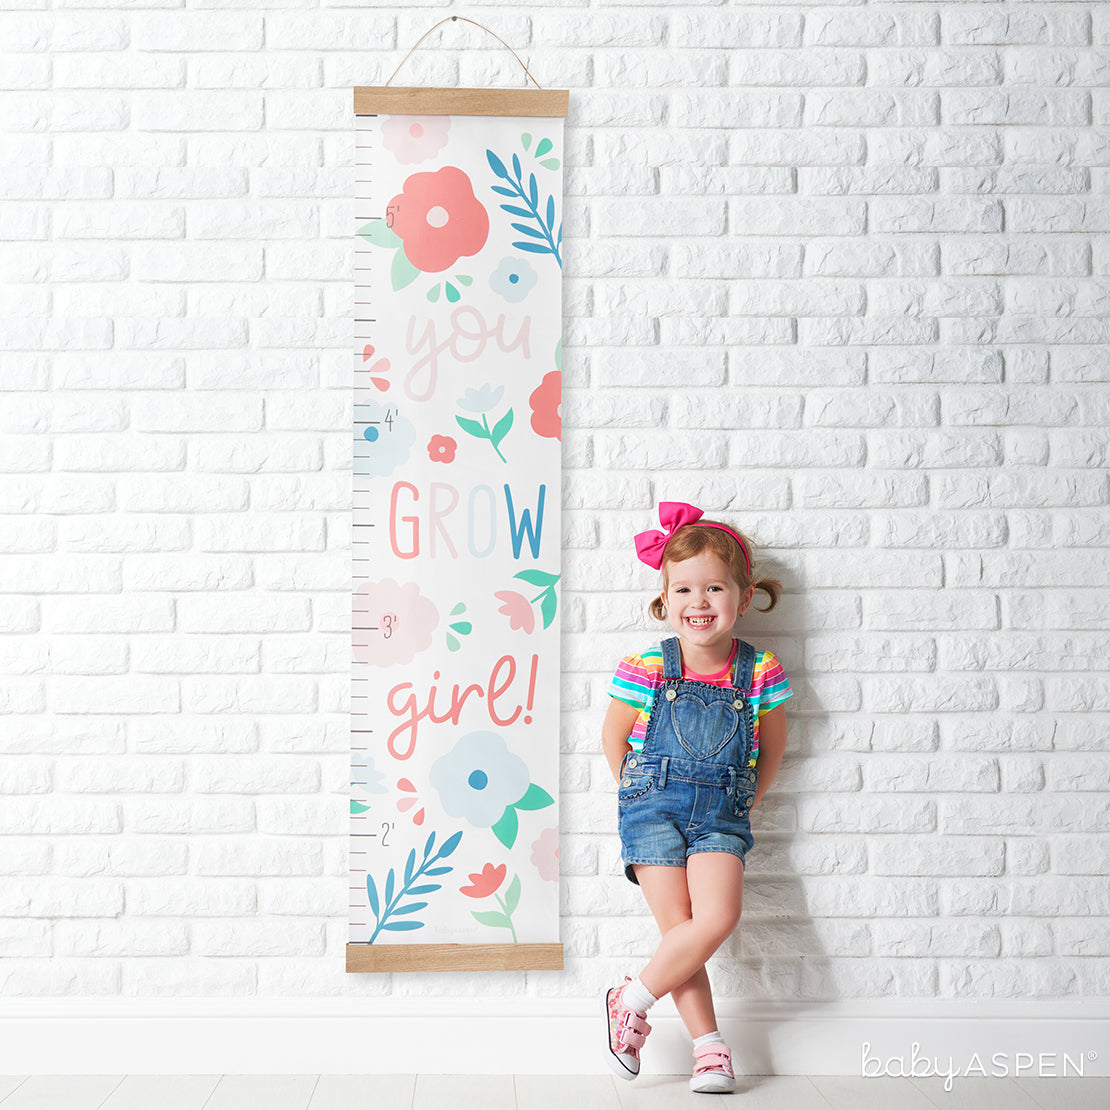   7 Easy Room Decor From Baby to Toddler   Baby AspenYou Grow Girl Growth Chart